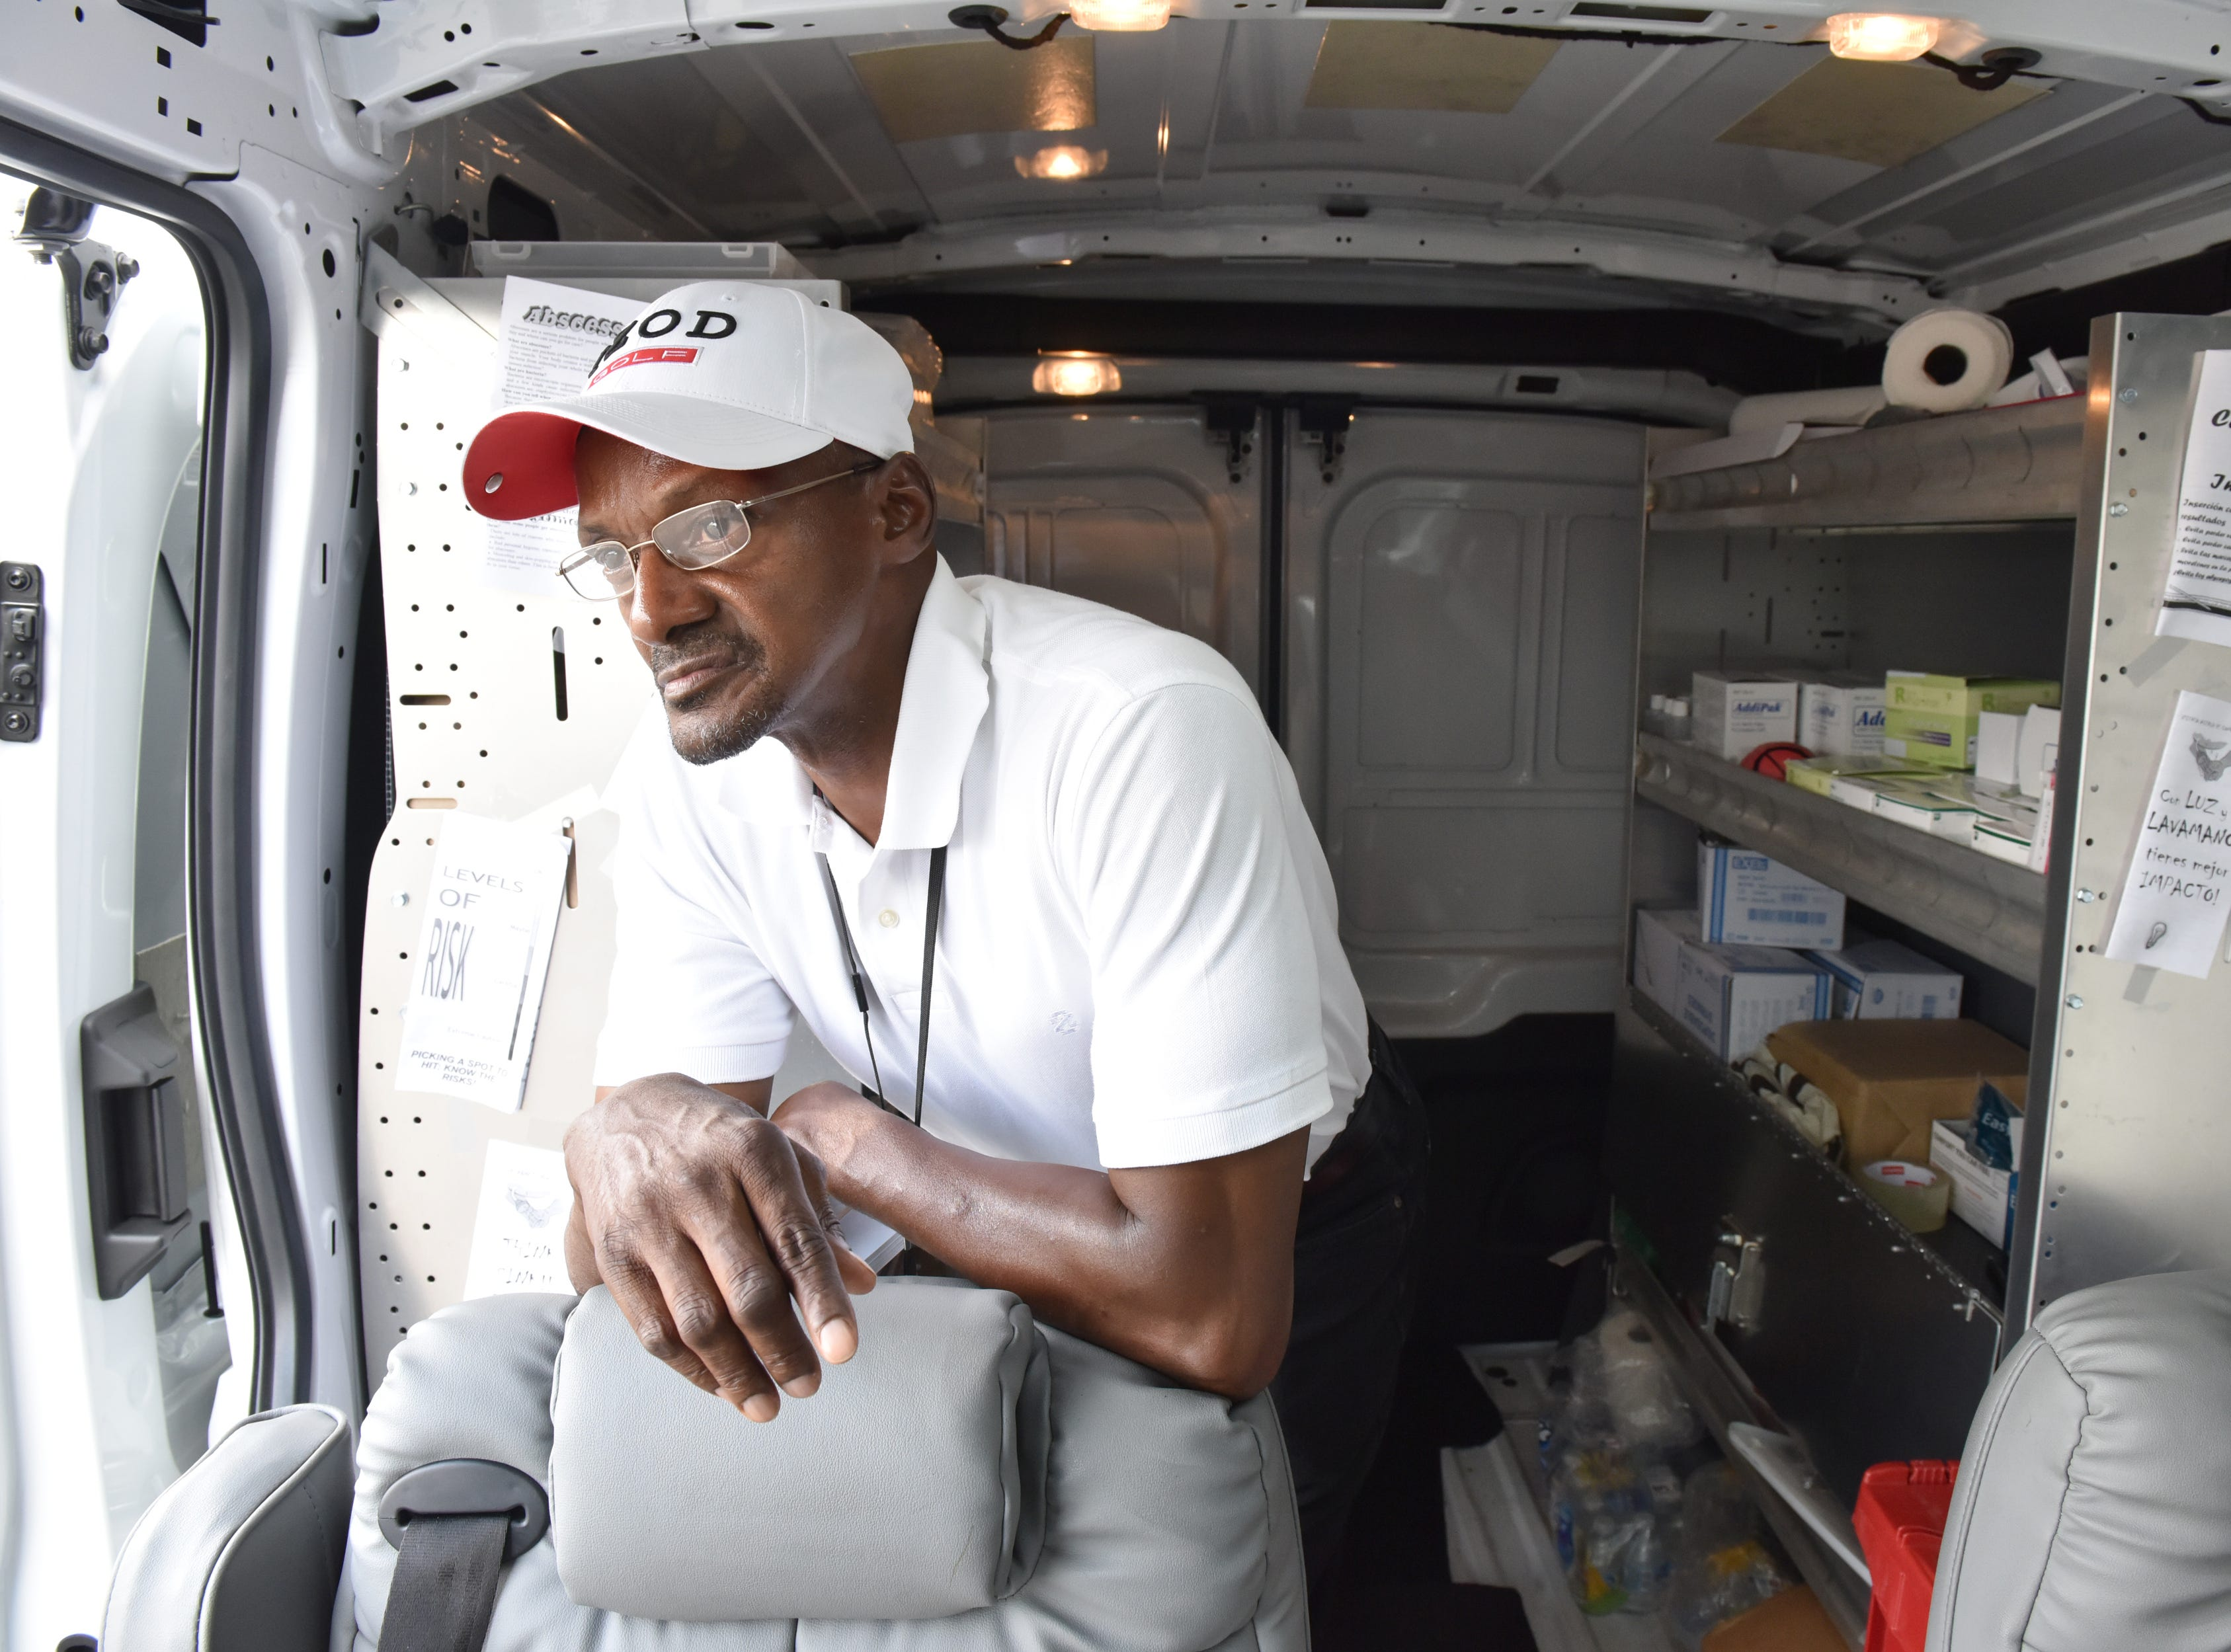 Ralph Henderson, a harm reduction specialist, waits by the van for clients to exchange syringes. A van parked in the Walgreen's parking lot provides clean needles in exchange for dirty ones twice a week in Paterson on Friday July 27, 2018. For every used syringe brought in, the harm reduction specialists with Hyacinth Foundation provides a new sterile syringe. The van is stocked with syringes of different sizes, alcohol wipes, constriction bands, cooking cups, water, strips to test for fentanyl, and other products to safely inject heroin.